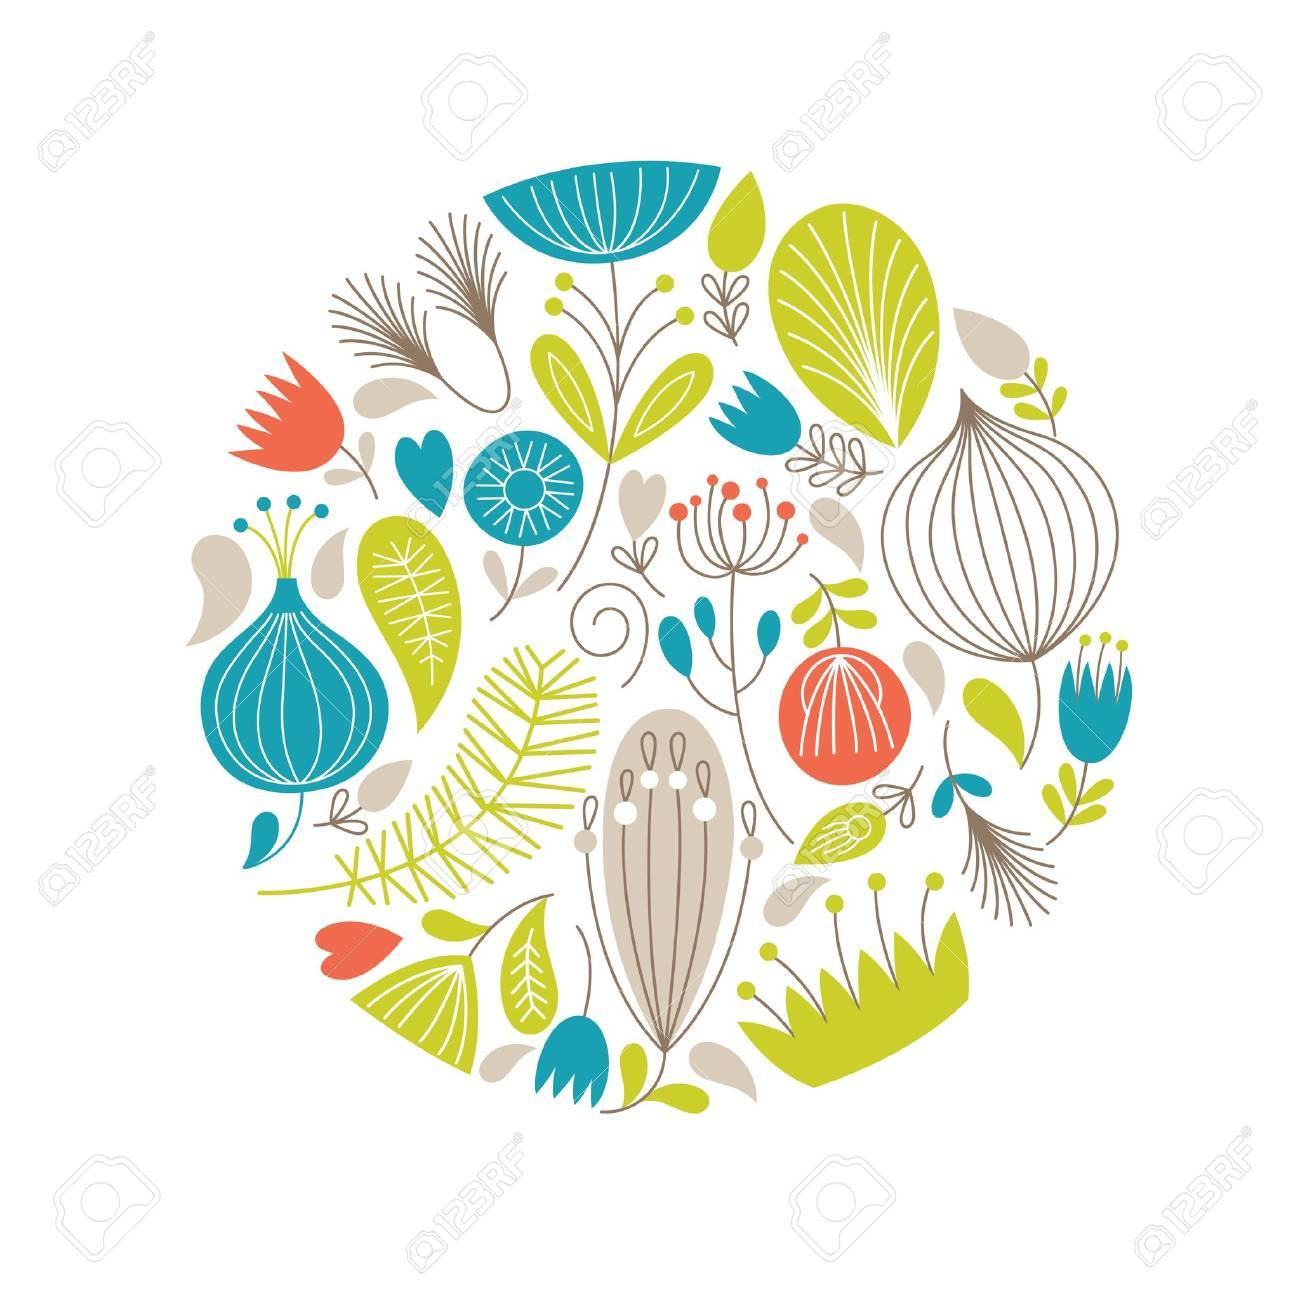 Floral illustration Stock Vector - 20058562